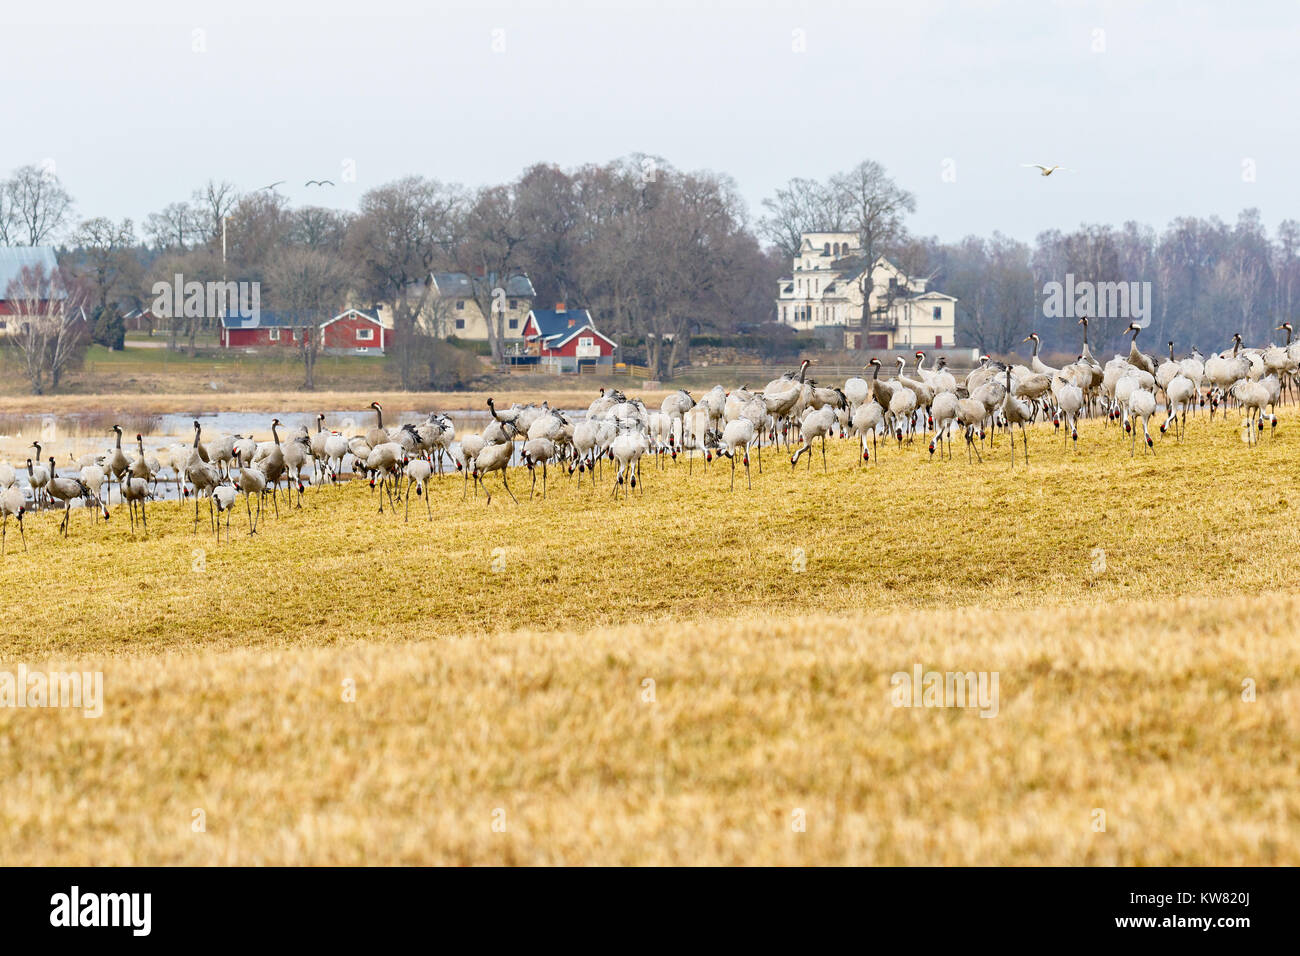 Cranes on a field in a rural spring landscape Stock Photo